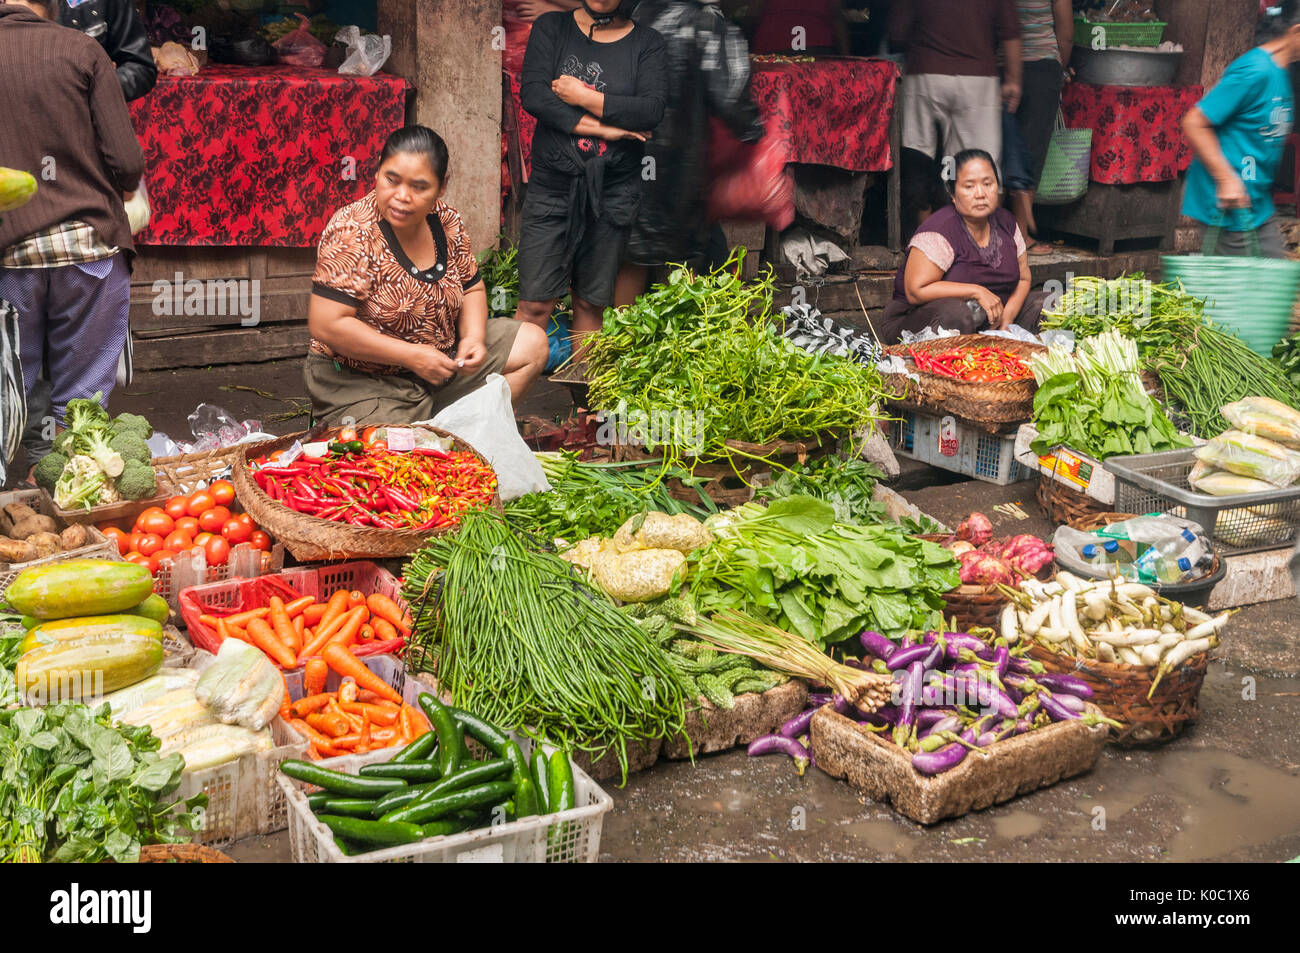 Women selling fruit and vegetables, at the market in Ubud, Bali, Indonesia - Stock Image